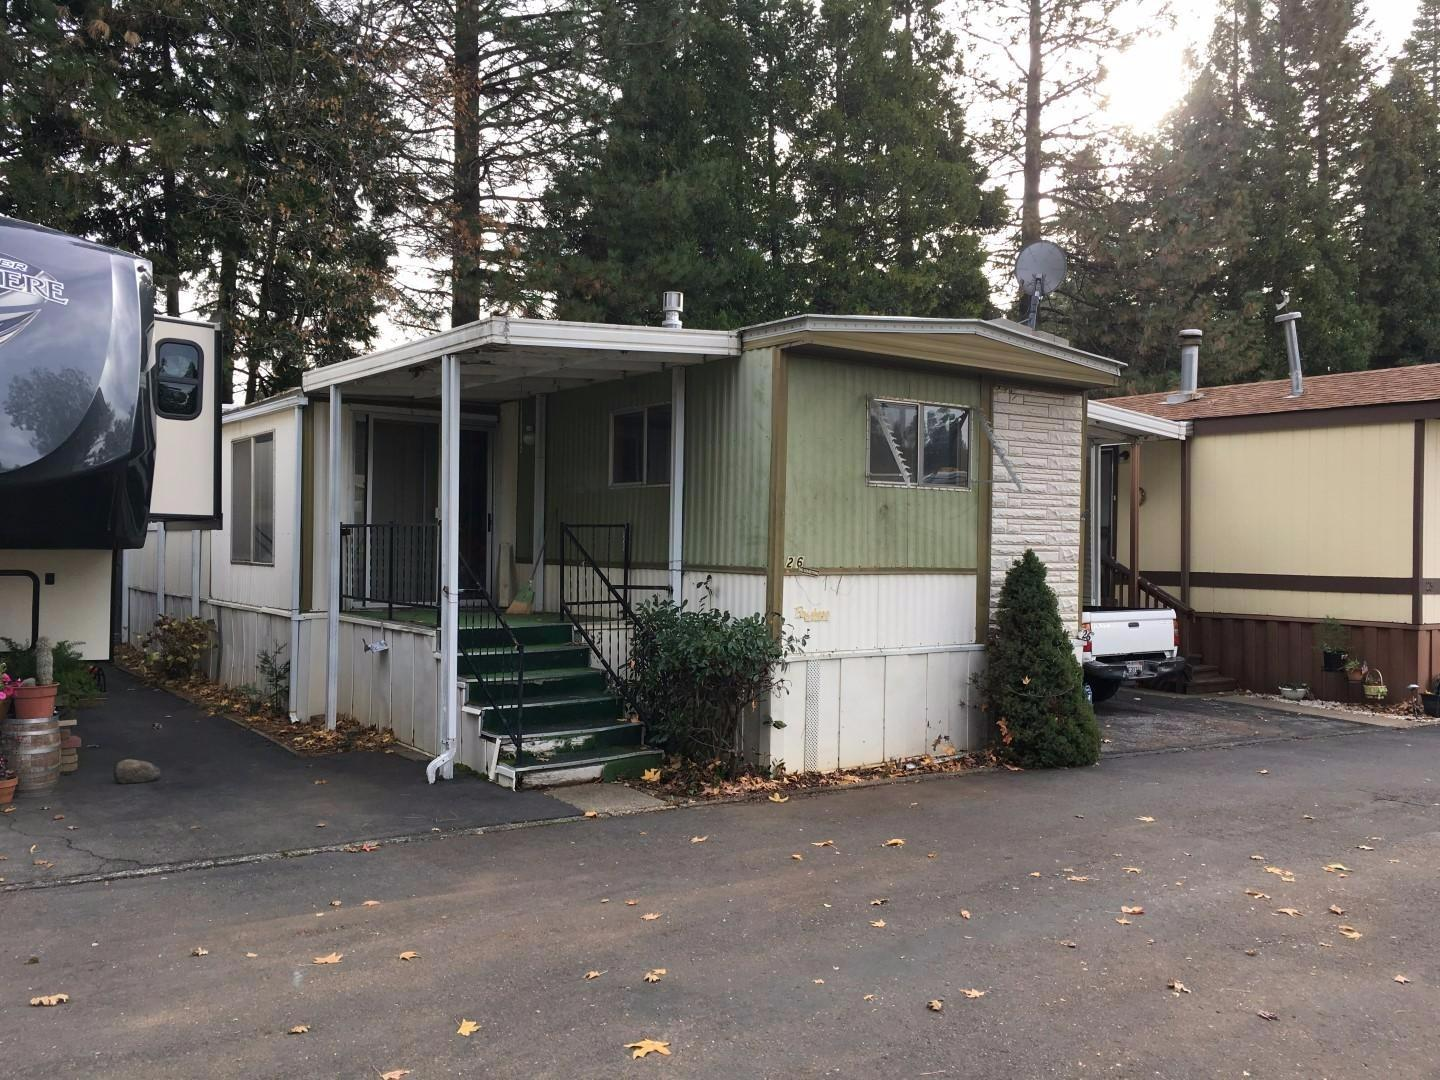 $14,000 - 2Br/2Ba -  for Sale in Pollock Pines